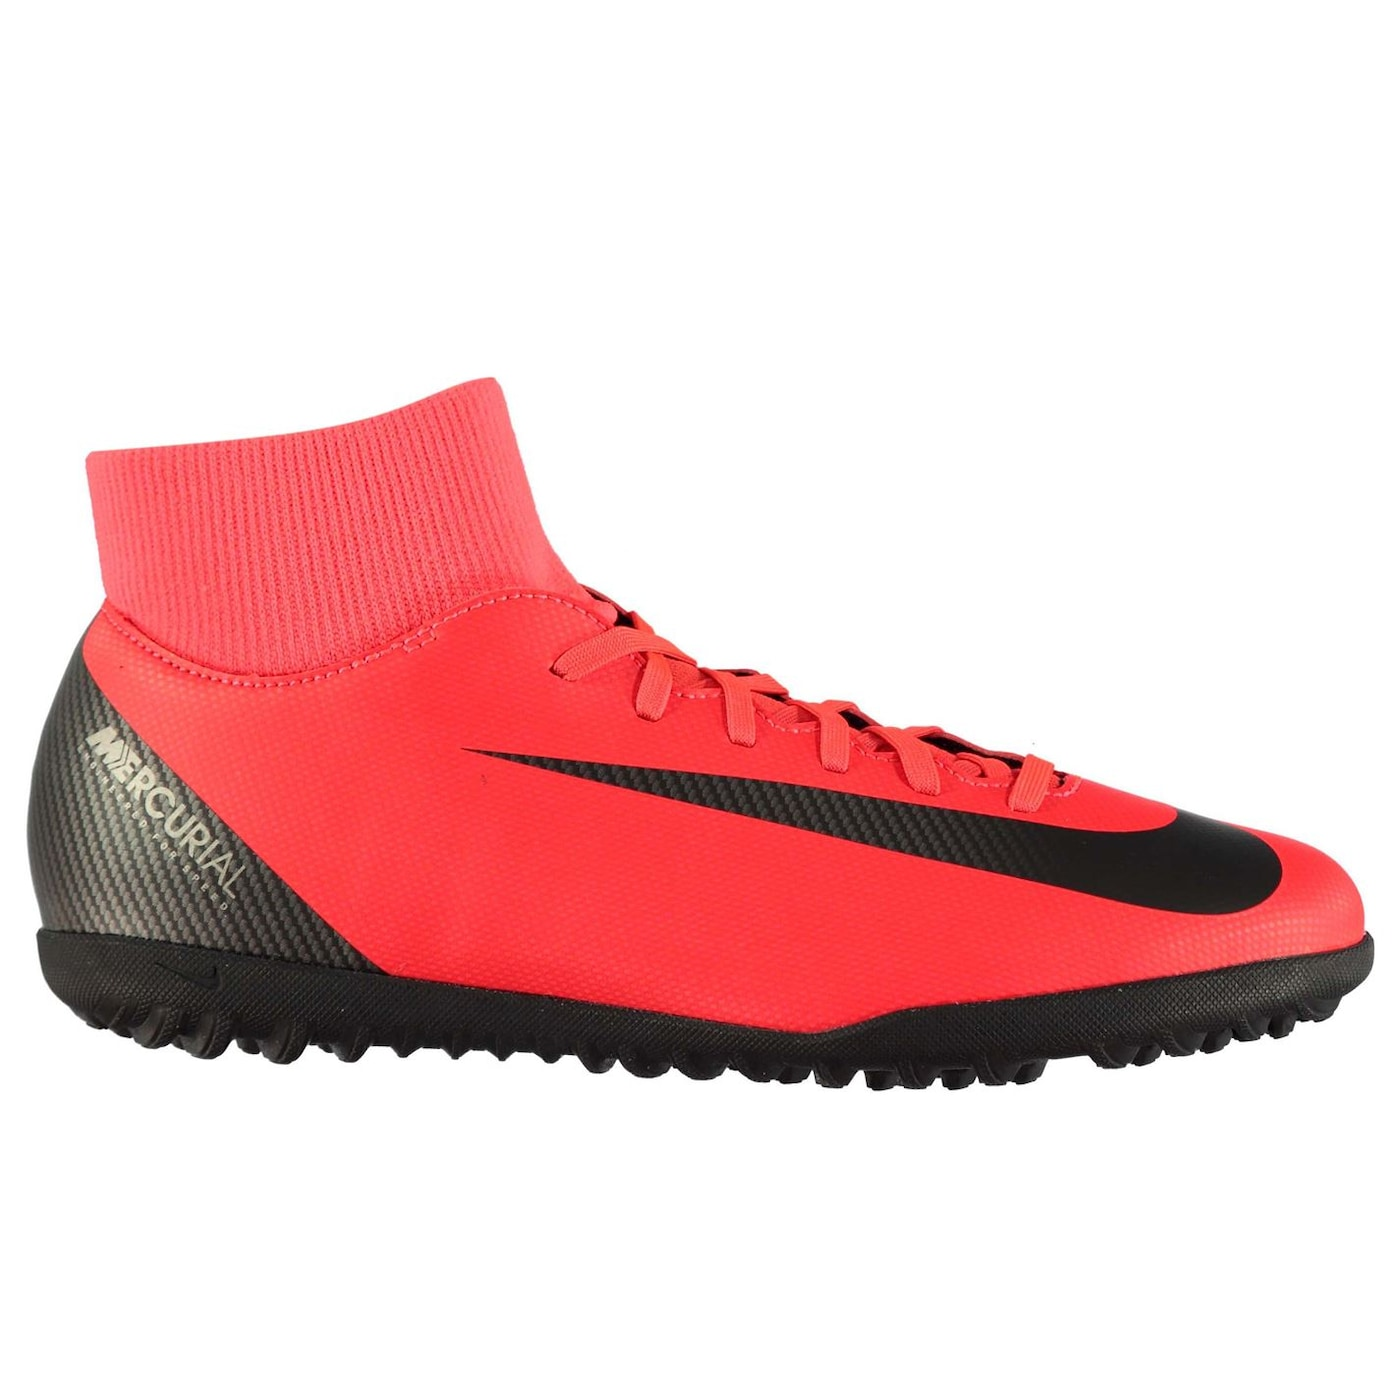 Nike Mercurial Superfly 6 Club CR7 Mens Astro Turf Football Boots